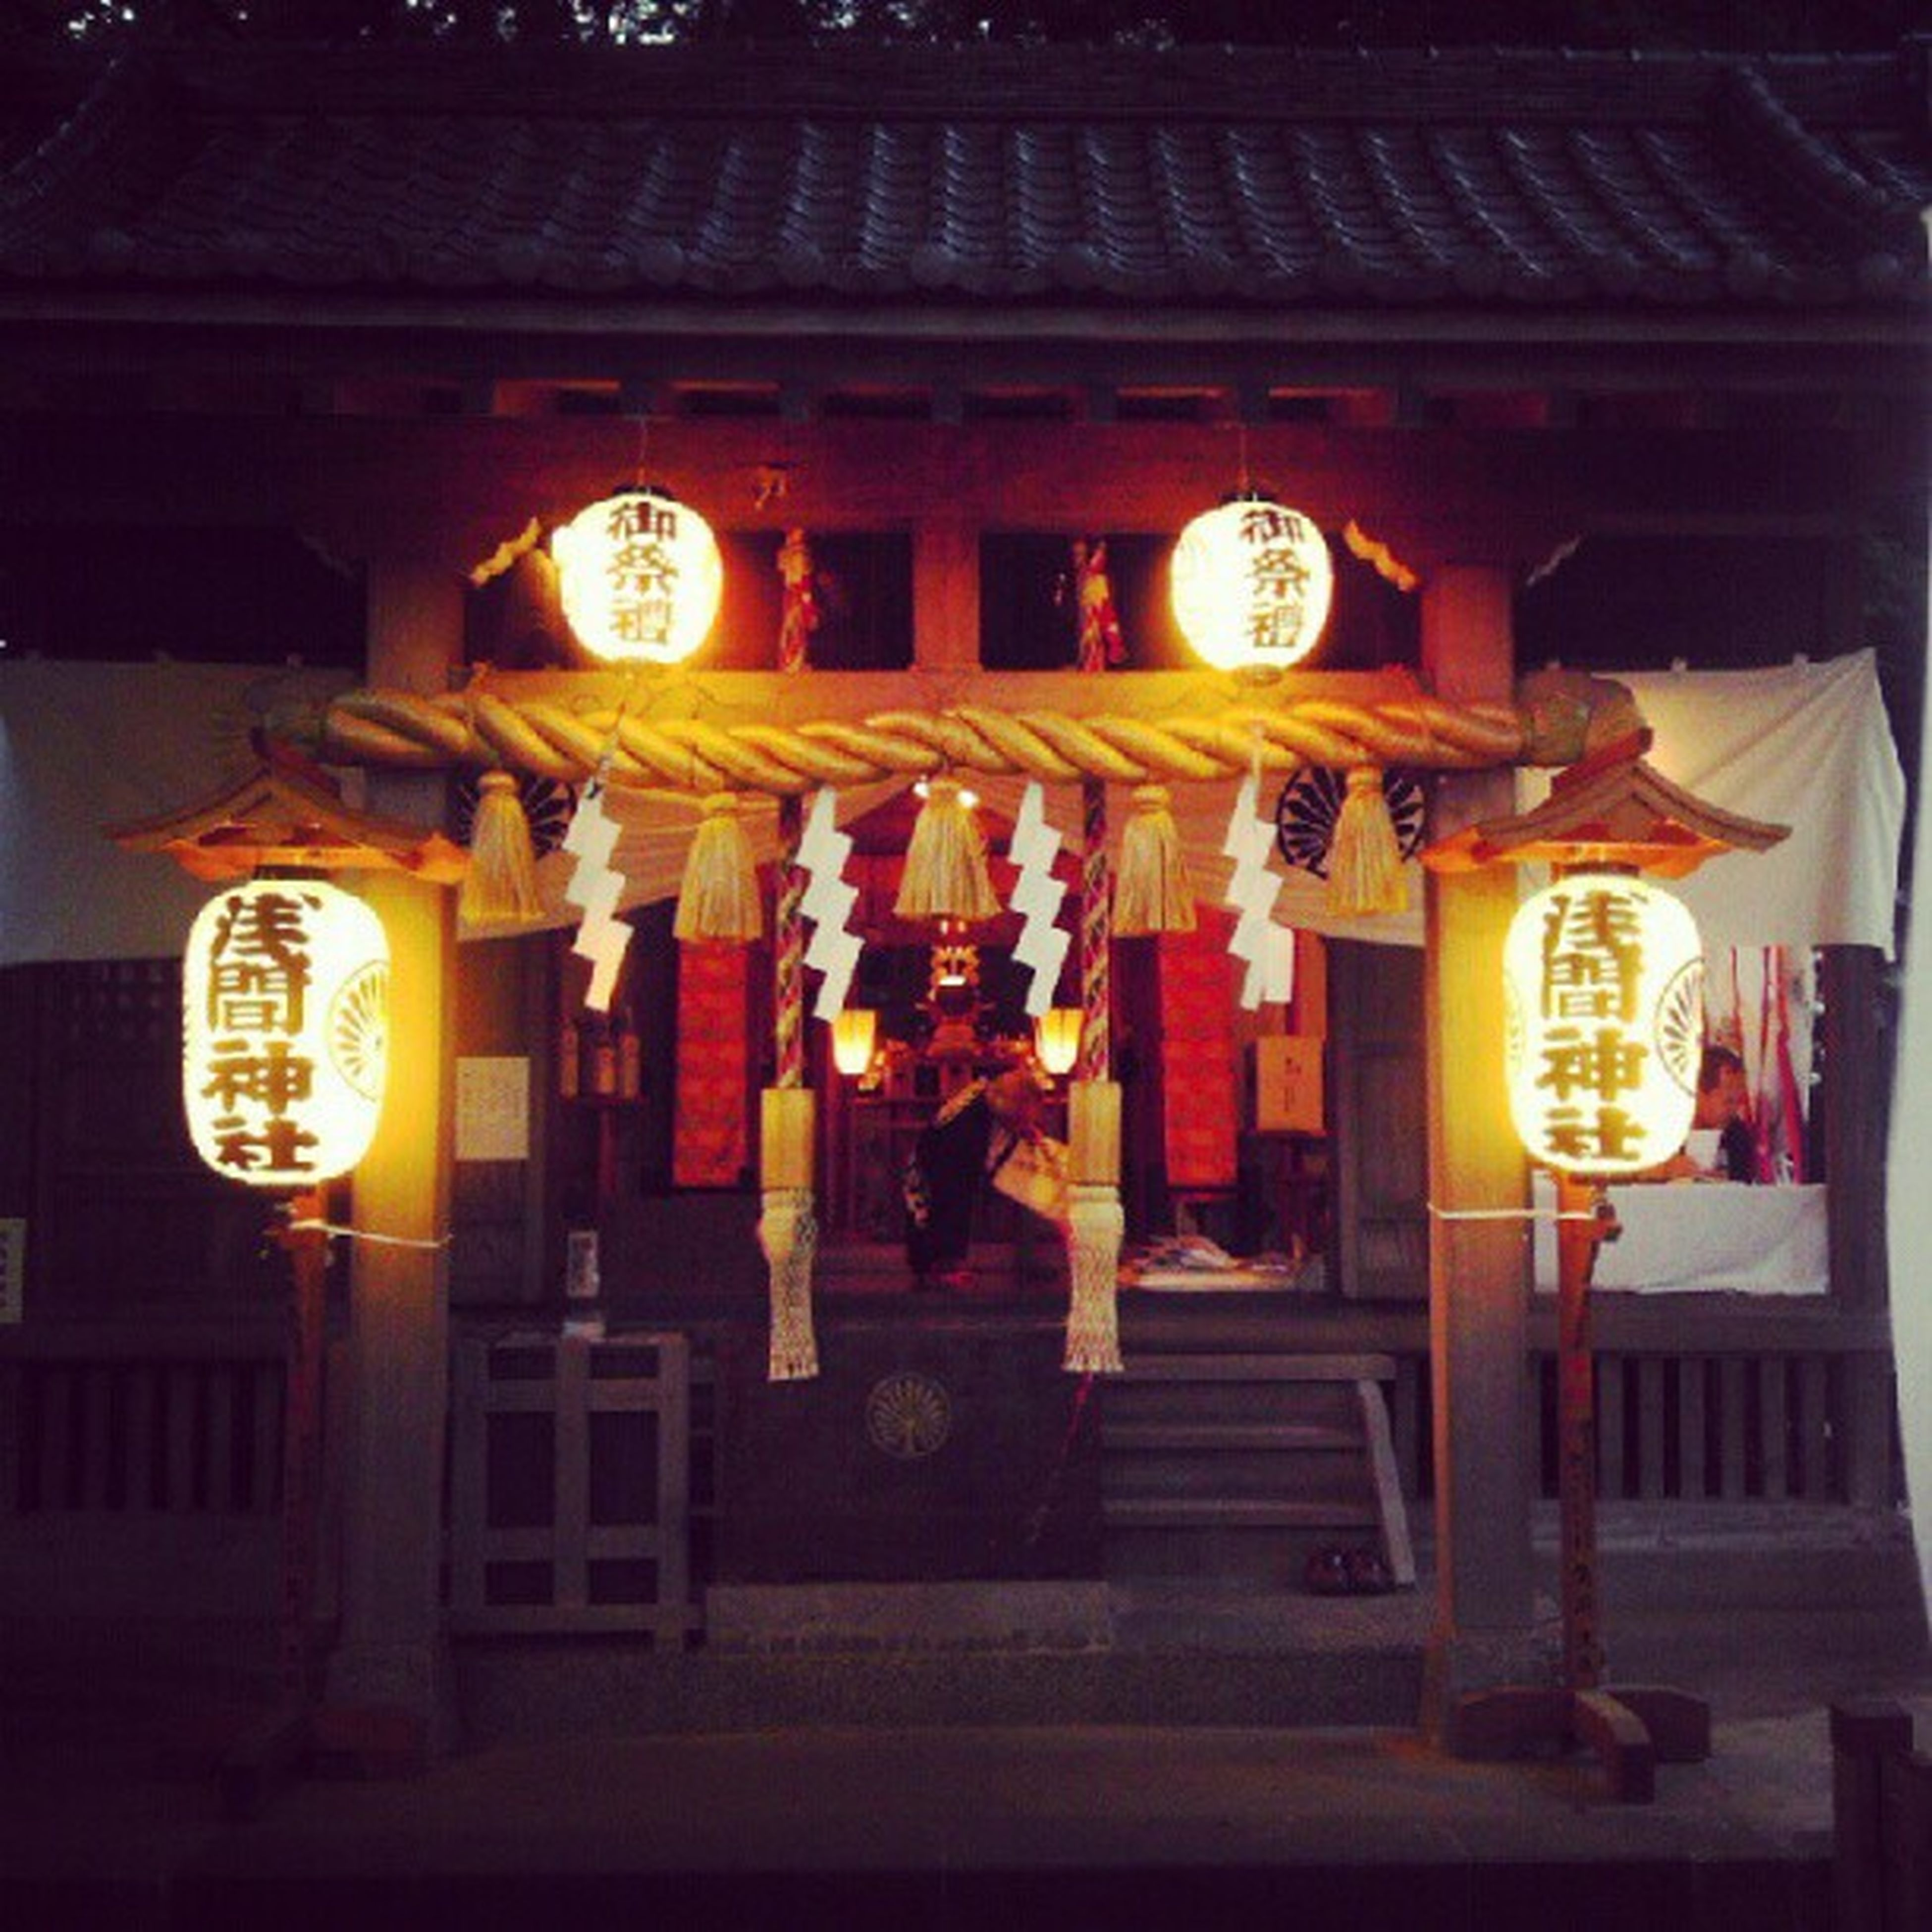 illuminated, night, text, lantern, lighting equipment, non-western script, architecture, built structure, building exterior, western script, religion, communication, place of worship, hanging, decoration, store, spirituality, low angle view, tradition, yellow